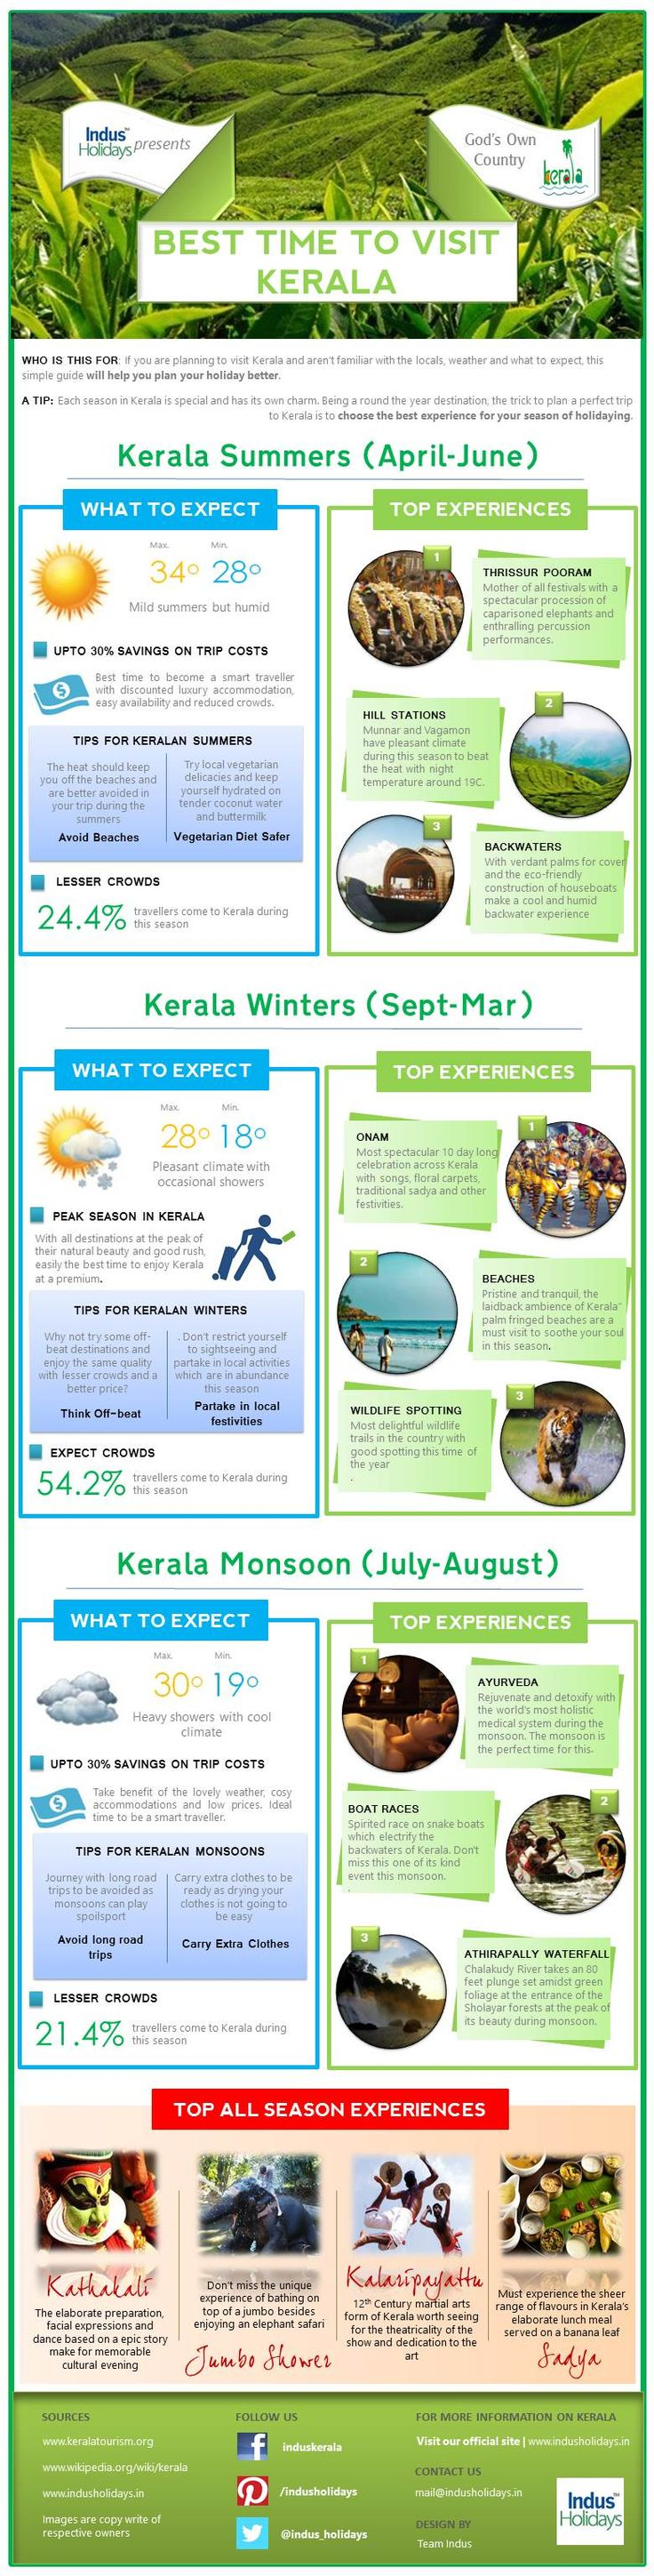 [Infographic: Best time to visit Kerala] If you are planning to visit Kerala and aren't familiar with the locals, weather and what to expect, this simple guide will help you plan your holiday better.